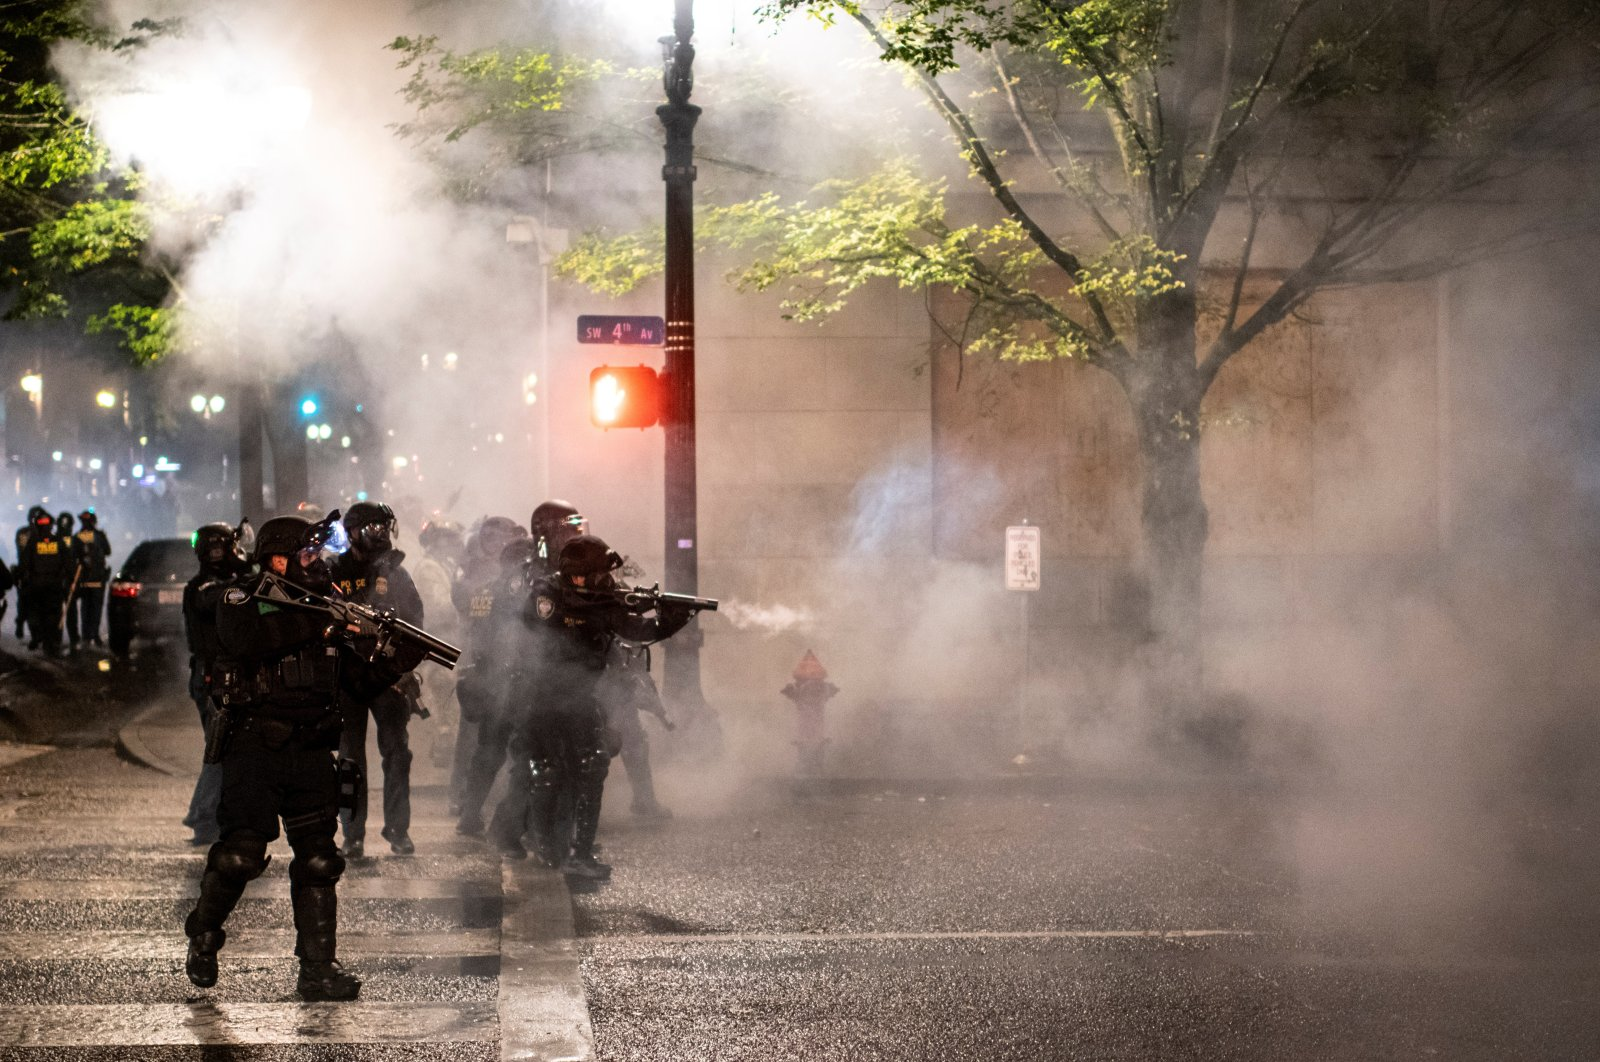 Federal law enforcement officers stand guard during unrest in Portland, Oregon, U.S., Sept. 23, 2020. (Reuters Photo)